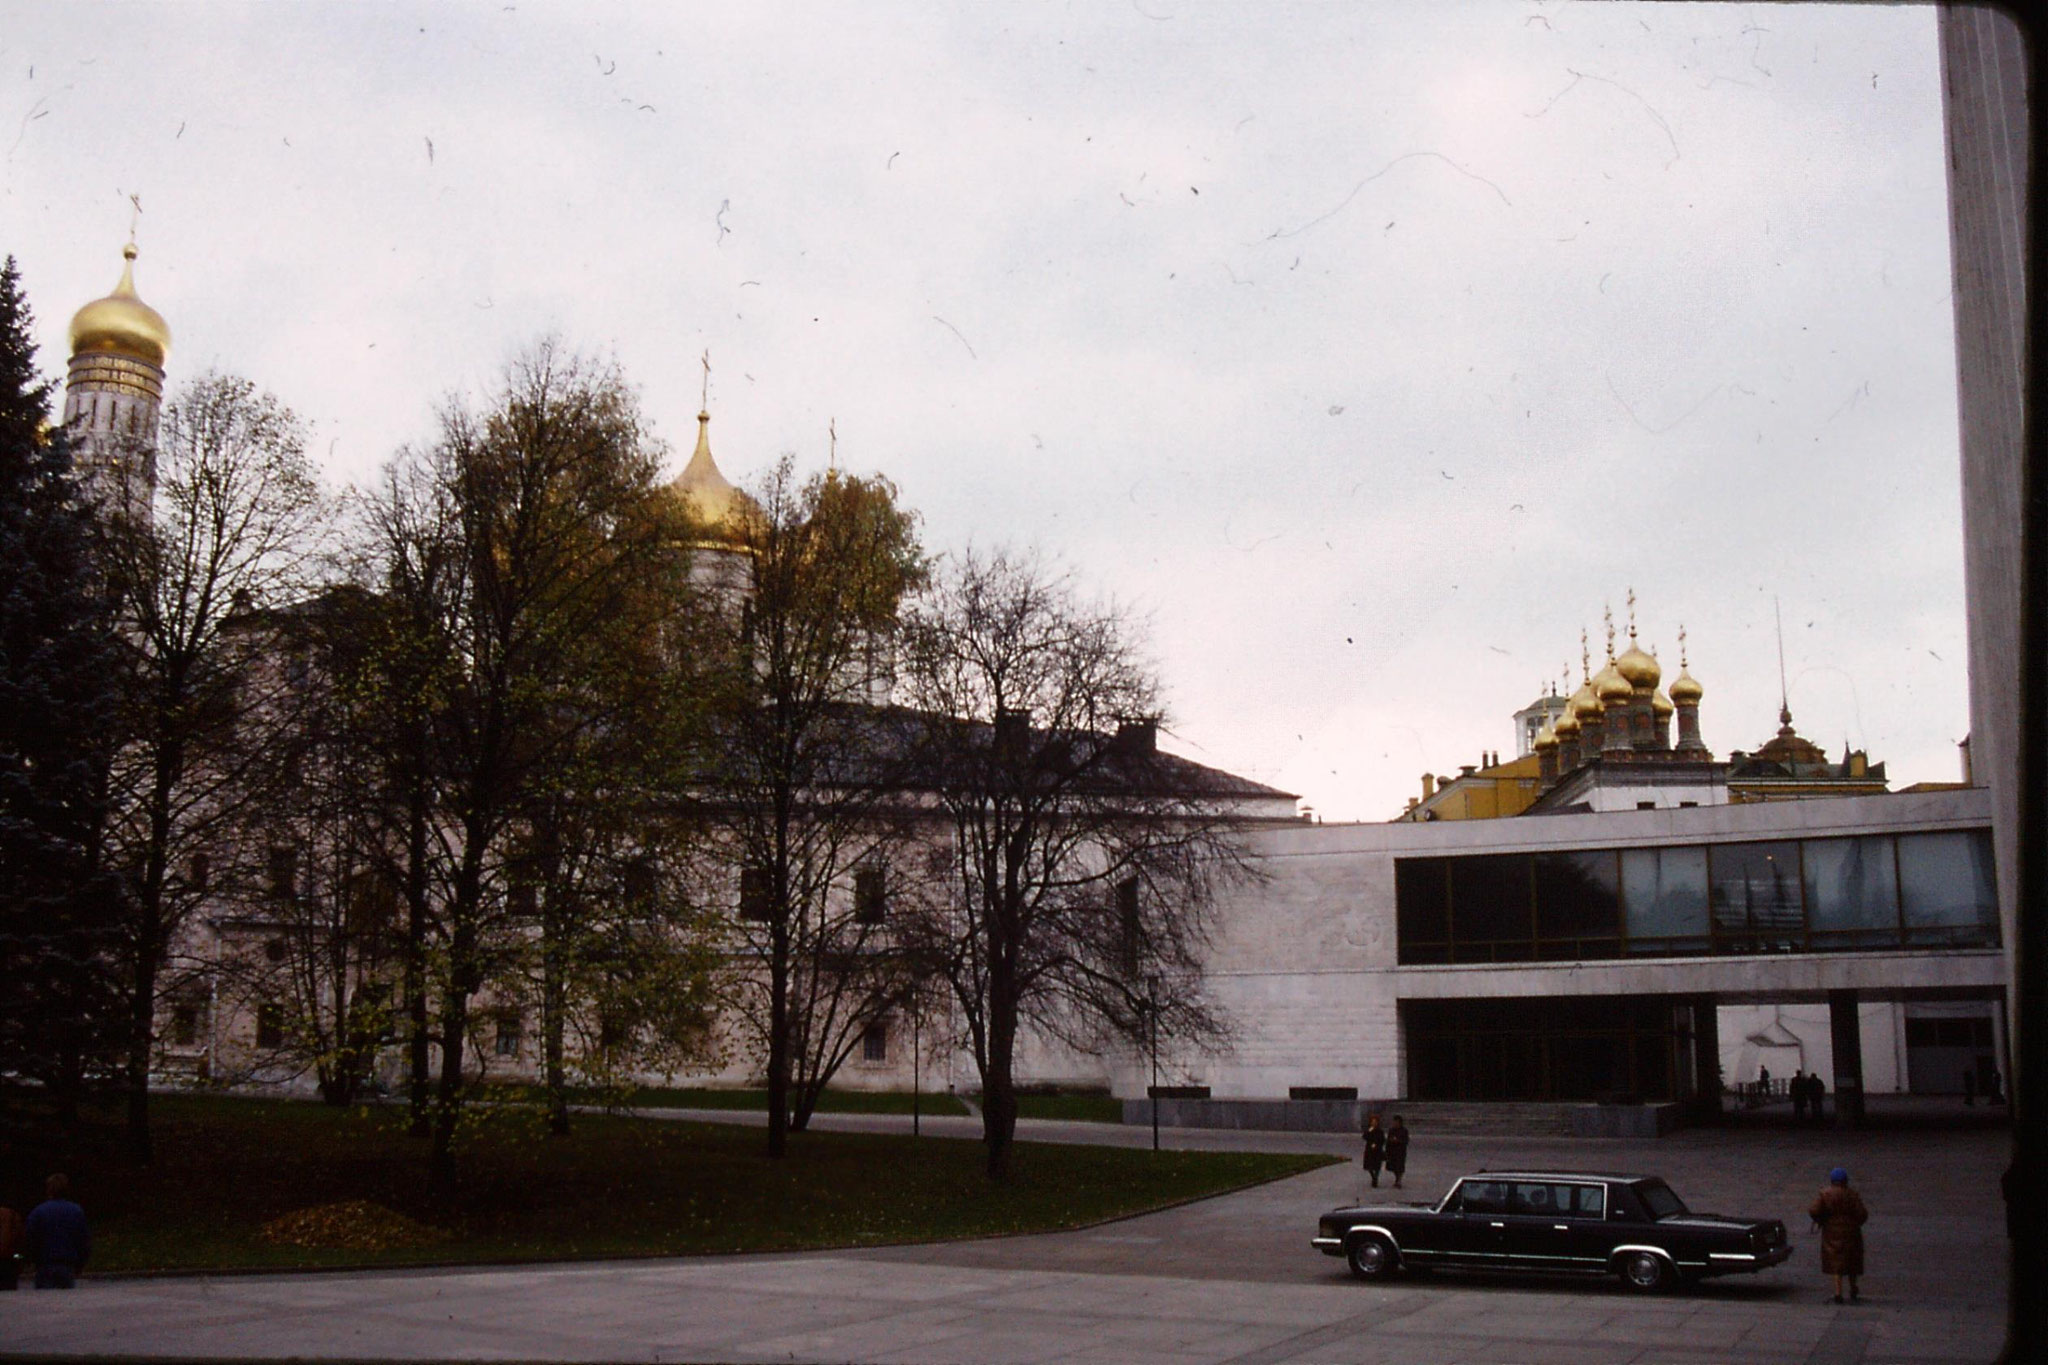 17/10/1988: 6: Kremlin, limo outside Palace of Congresses